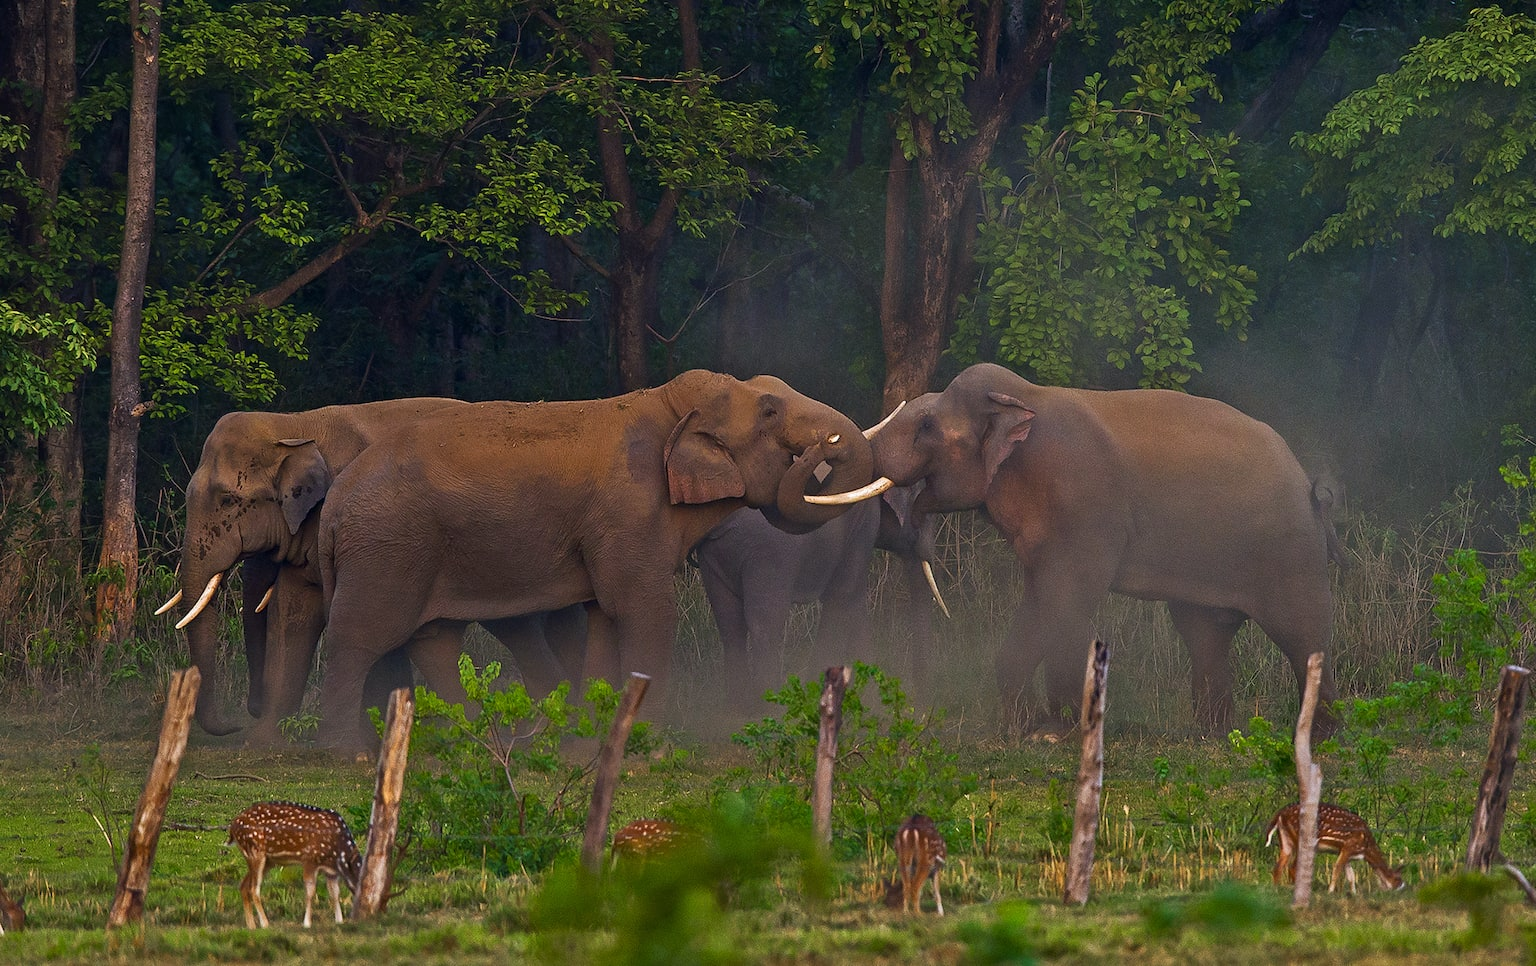 """Many conservationists believe that studying elephant communication helps in understanding human-animal conflict from the animal's perspective, and goes a long way in devising realistic conservation plans. Others maintain that habitat conservation is the only conflict-mitigation strategy that is workable in the long run, in favour of both people and elephants. Without adequate space, the survival of these gentle giants seems unlikely, but unfortunately, this is not considered a viable approach by most governments. As journalist Graydon Carter wrote, """"We admire elephants in part because they demonstrate what we consider the finest human traits: empathy, self-awareness, and social intelligence. But the way we treat them puts on display the very worst of human behaviour."""""""